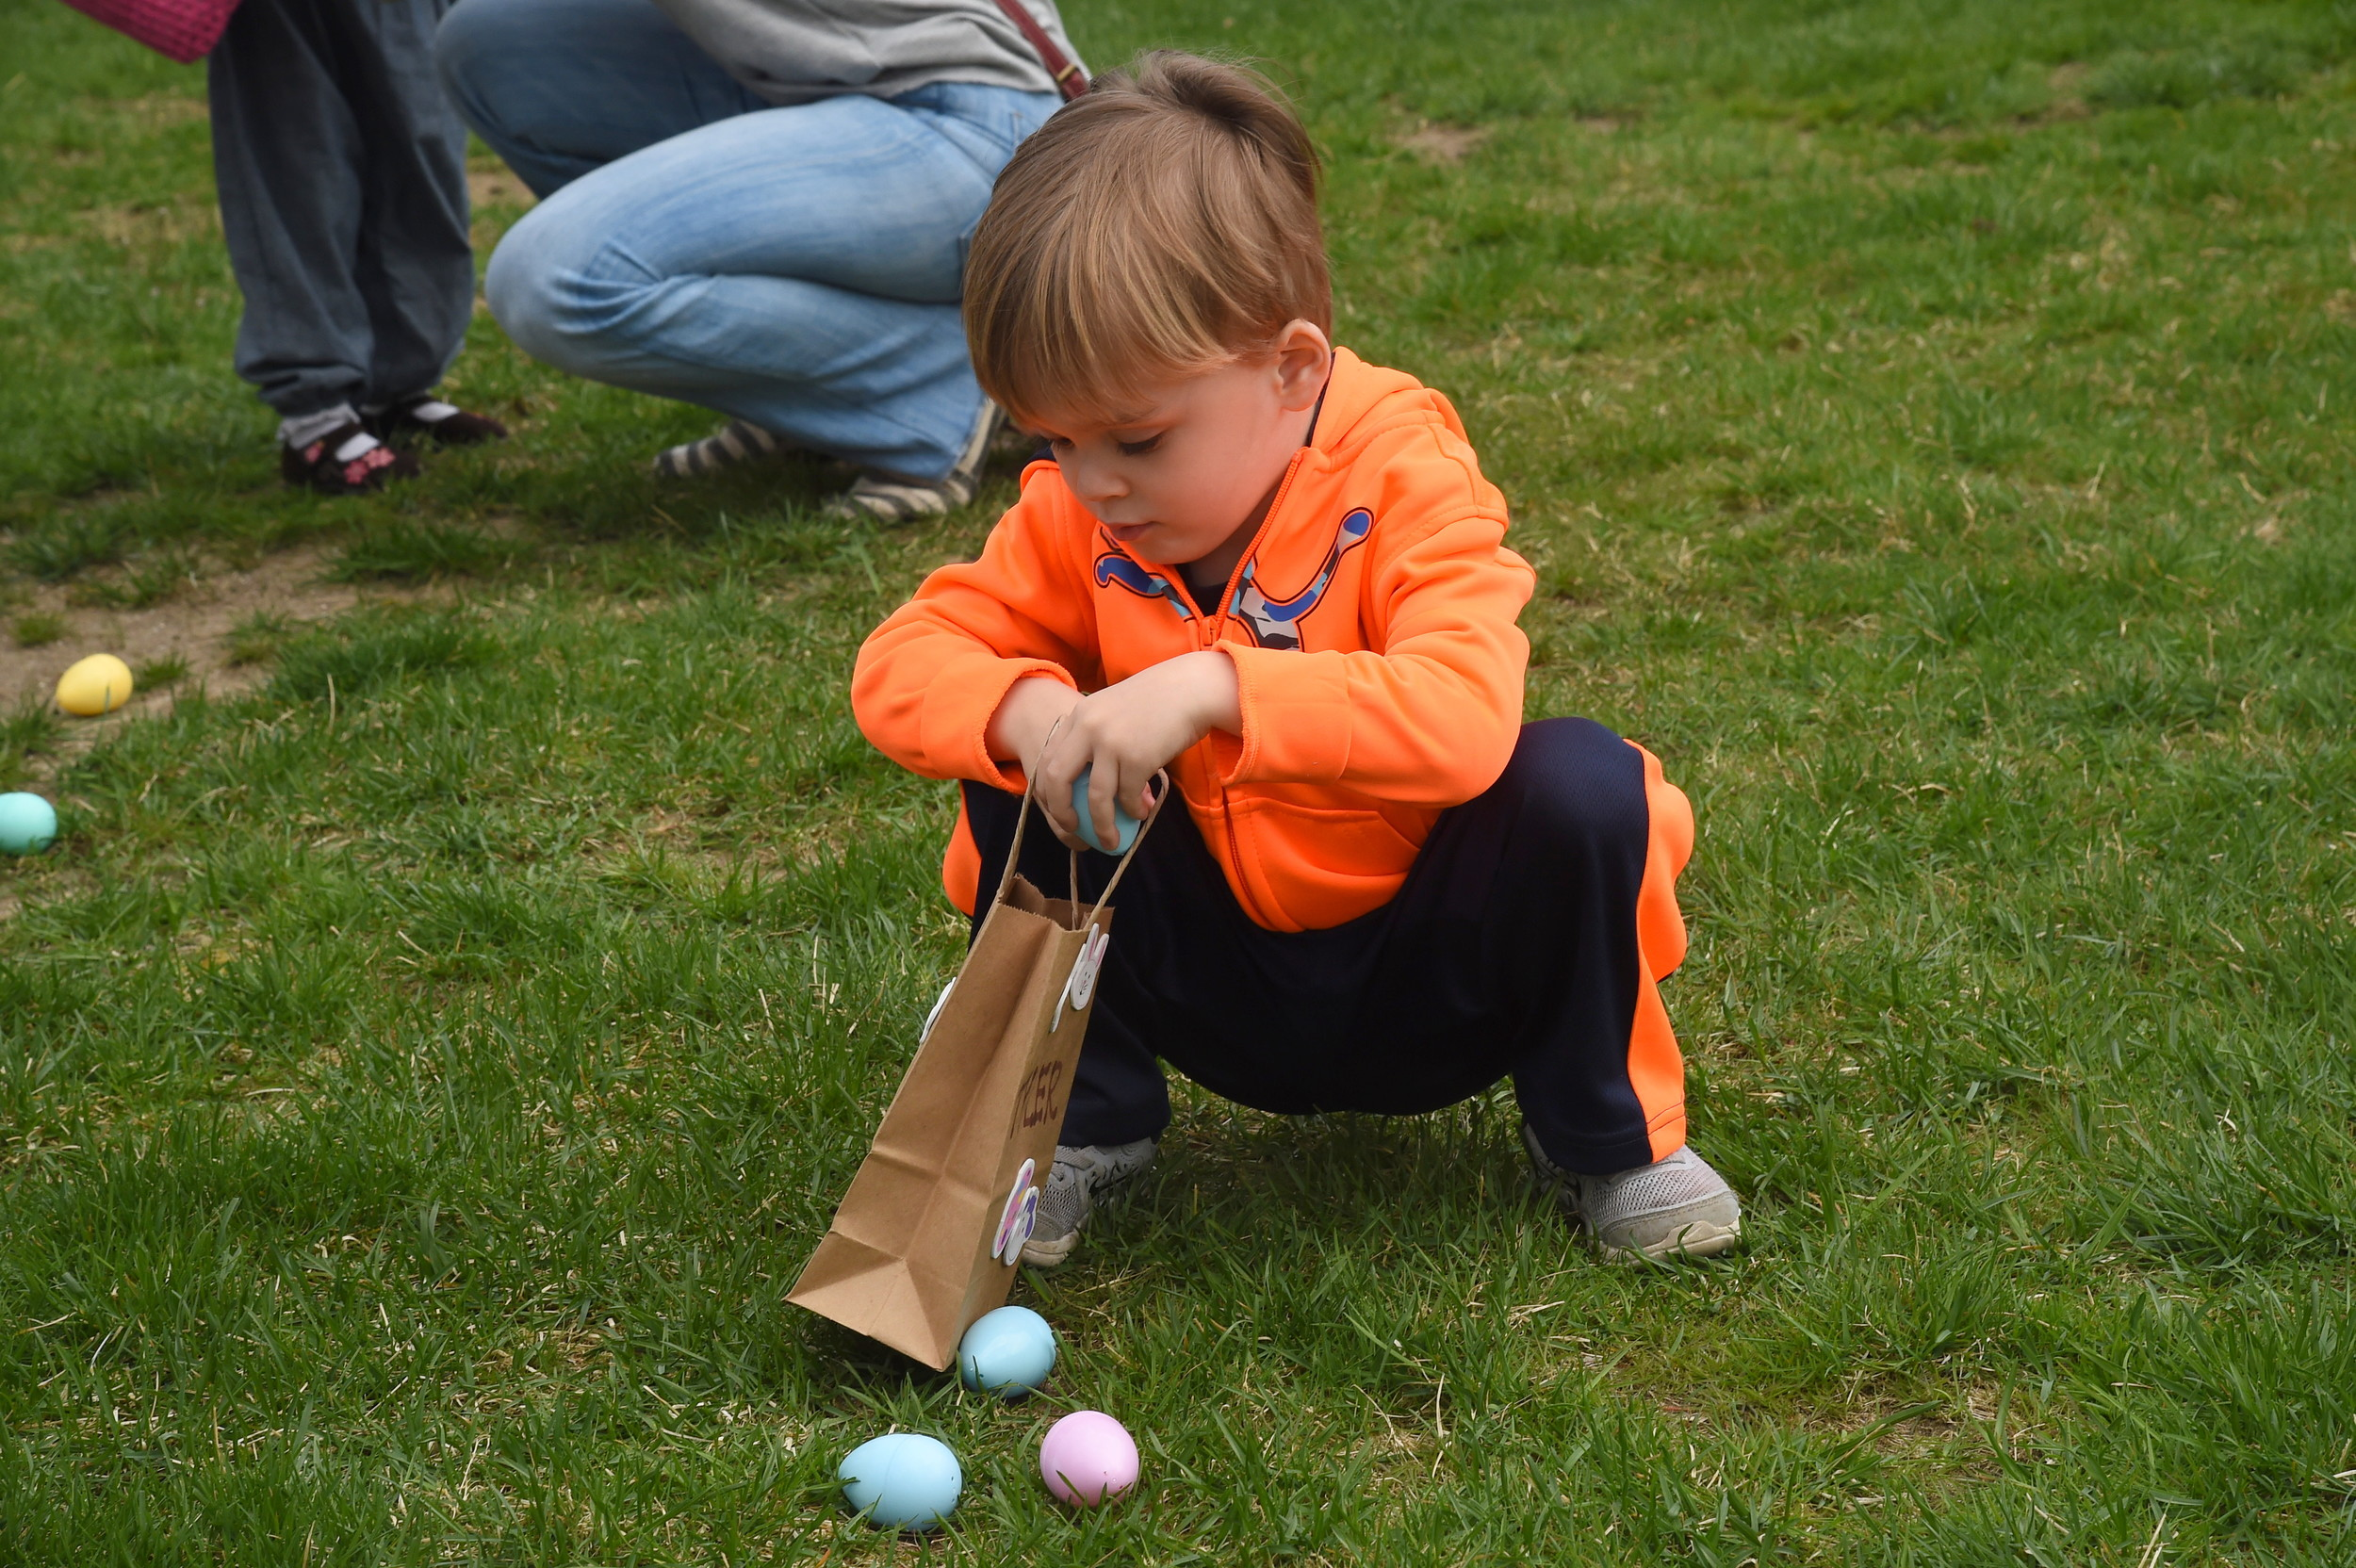 Salvatore Mongeluzzi, 2, was lost in concentration as he hunted the elusive Easter eggs.